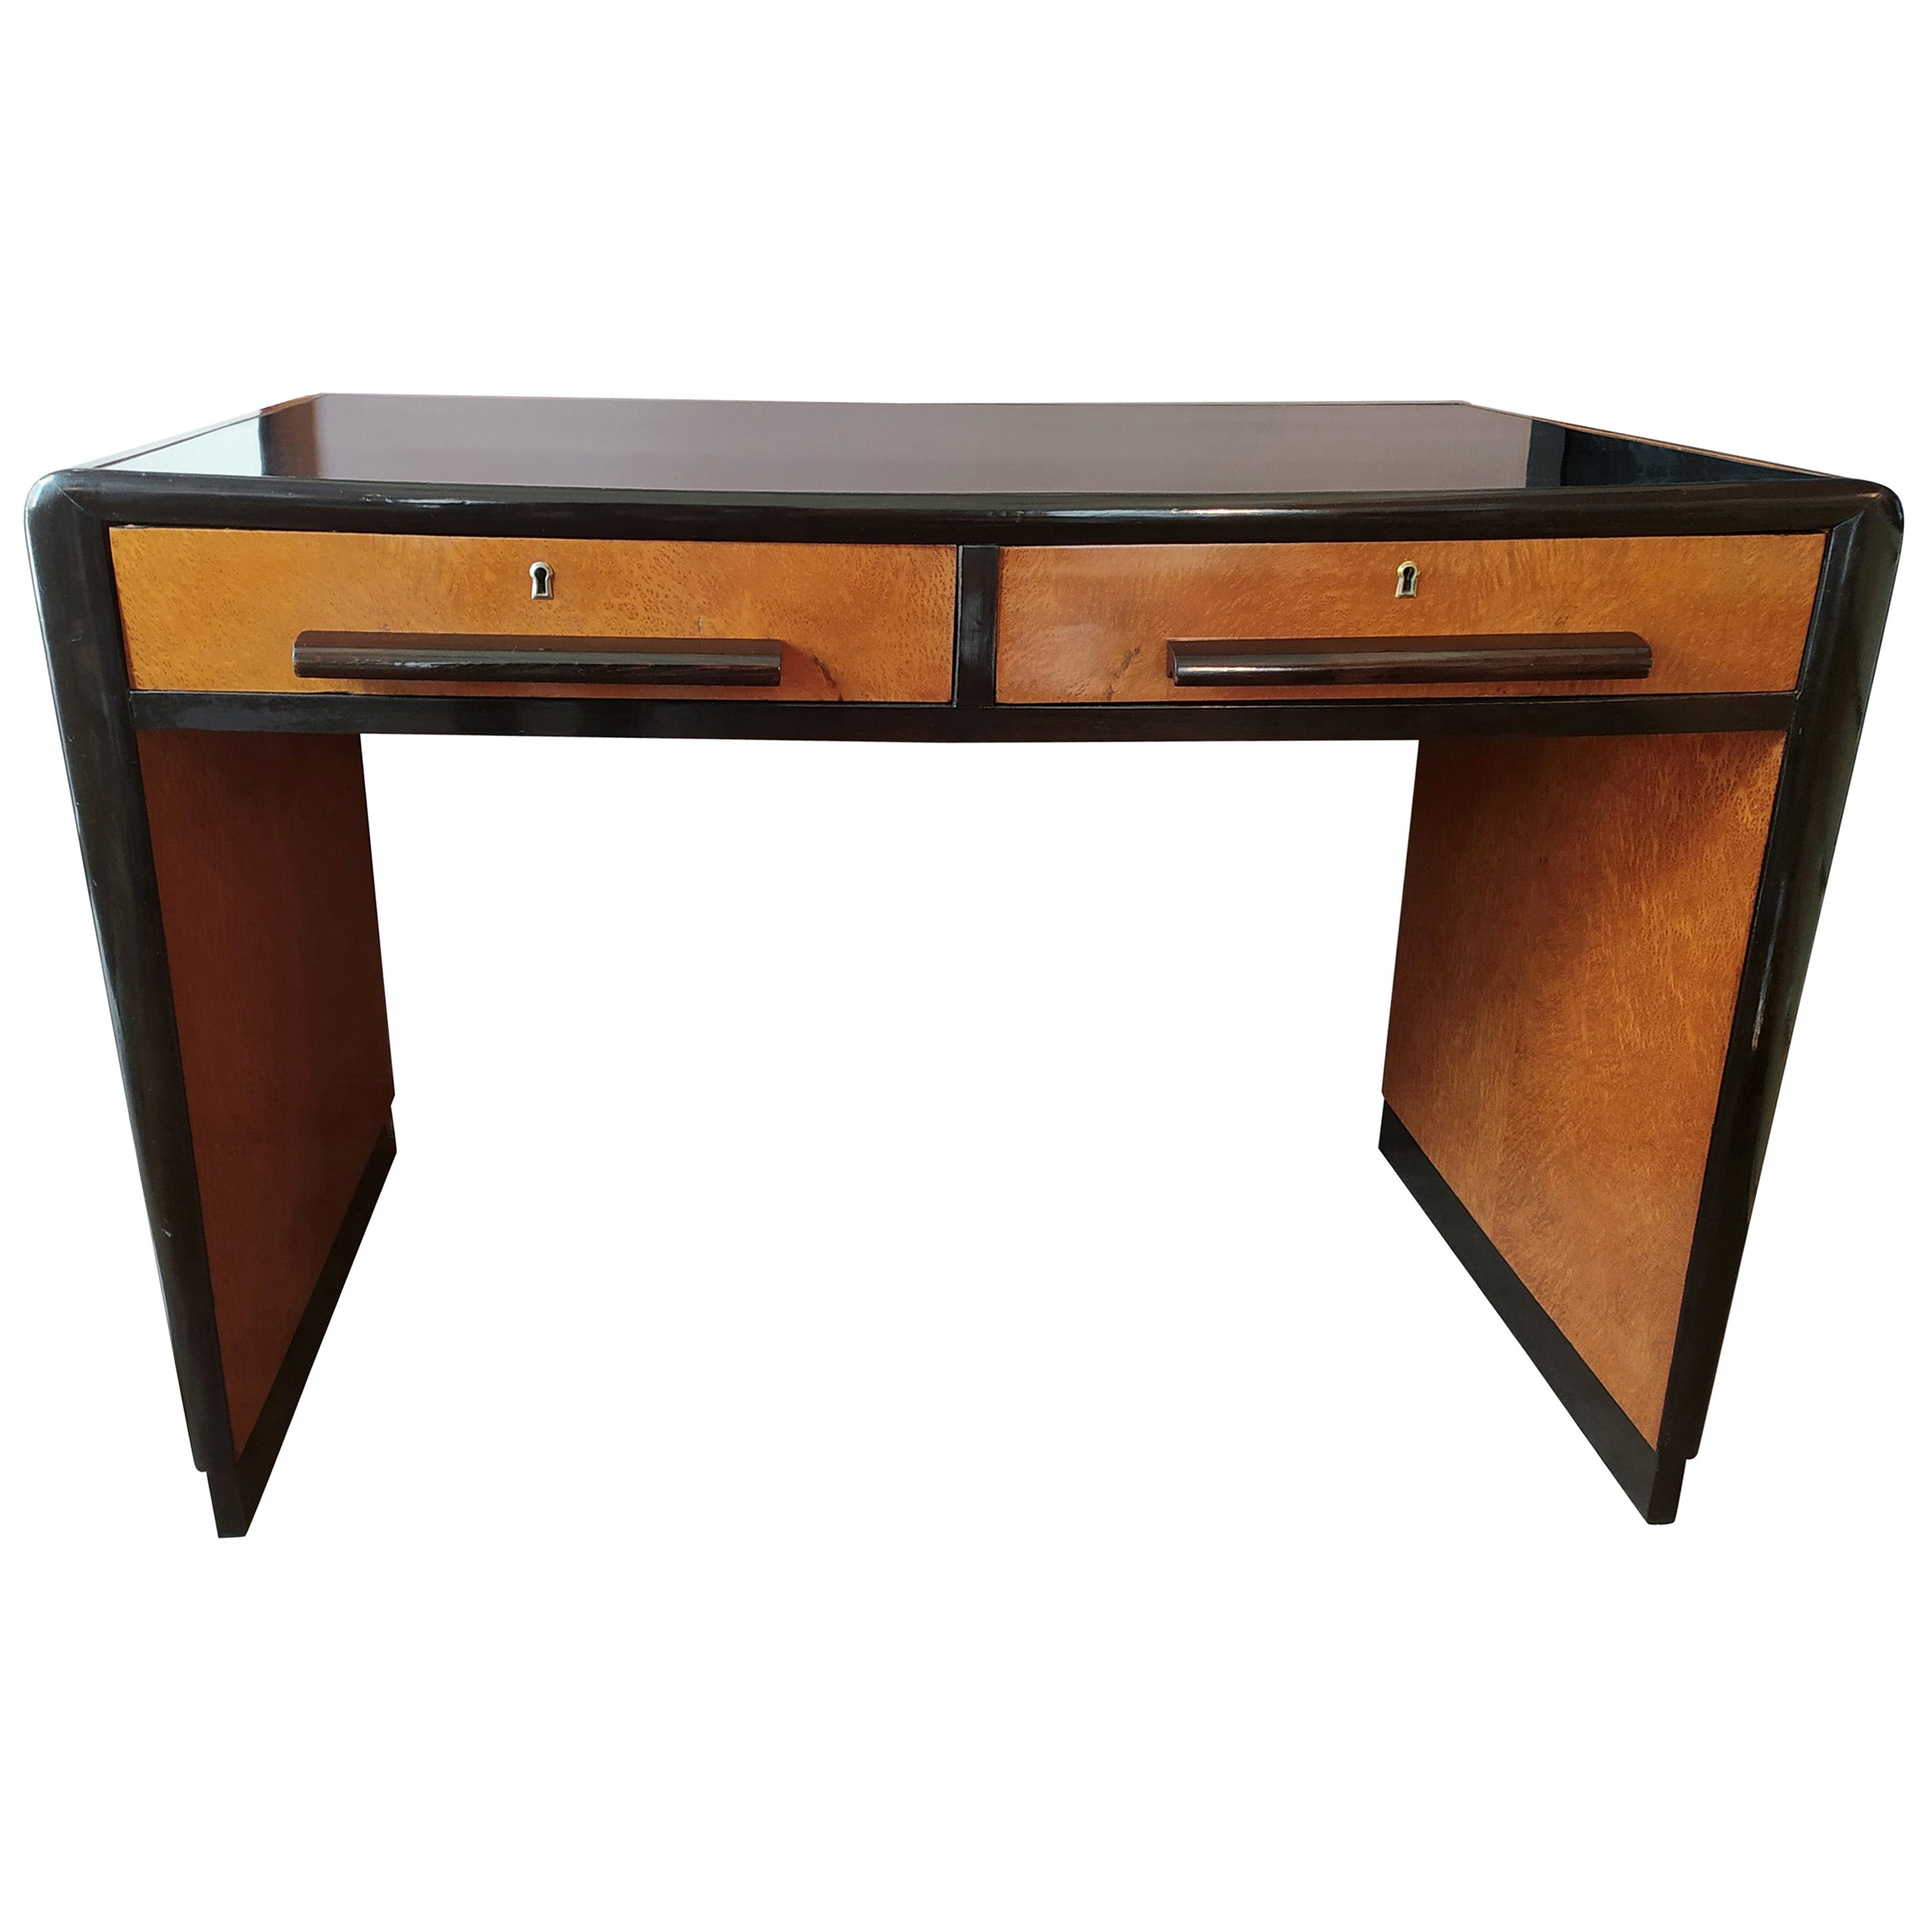 Astonishing Art Deco Desk in Briar Root and Ebonized Wood, France, 1930